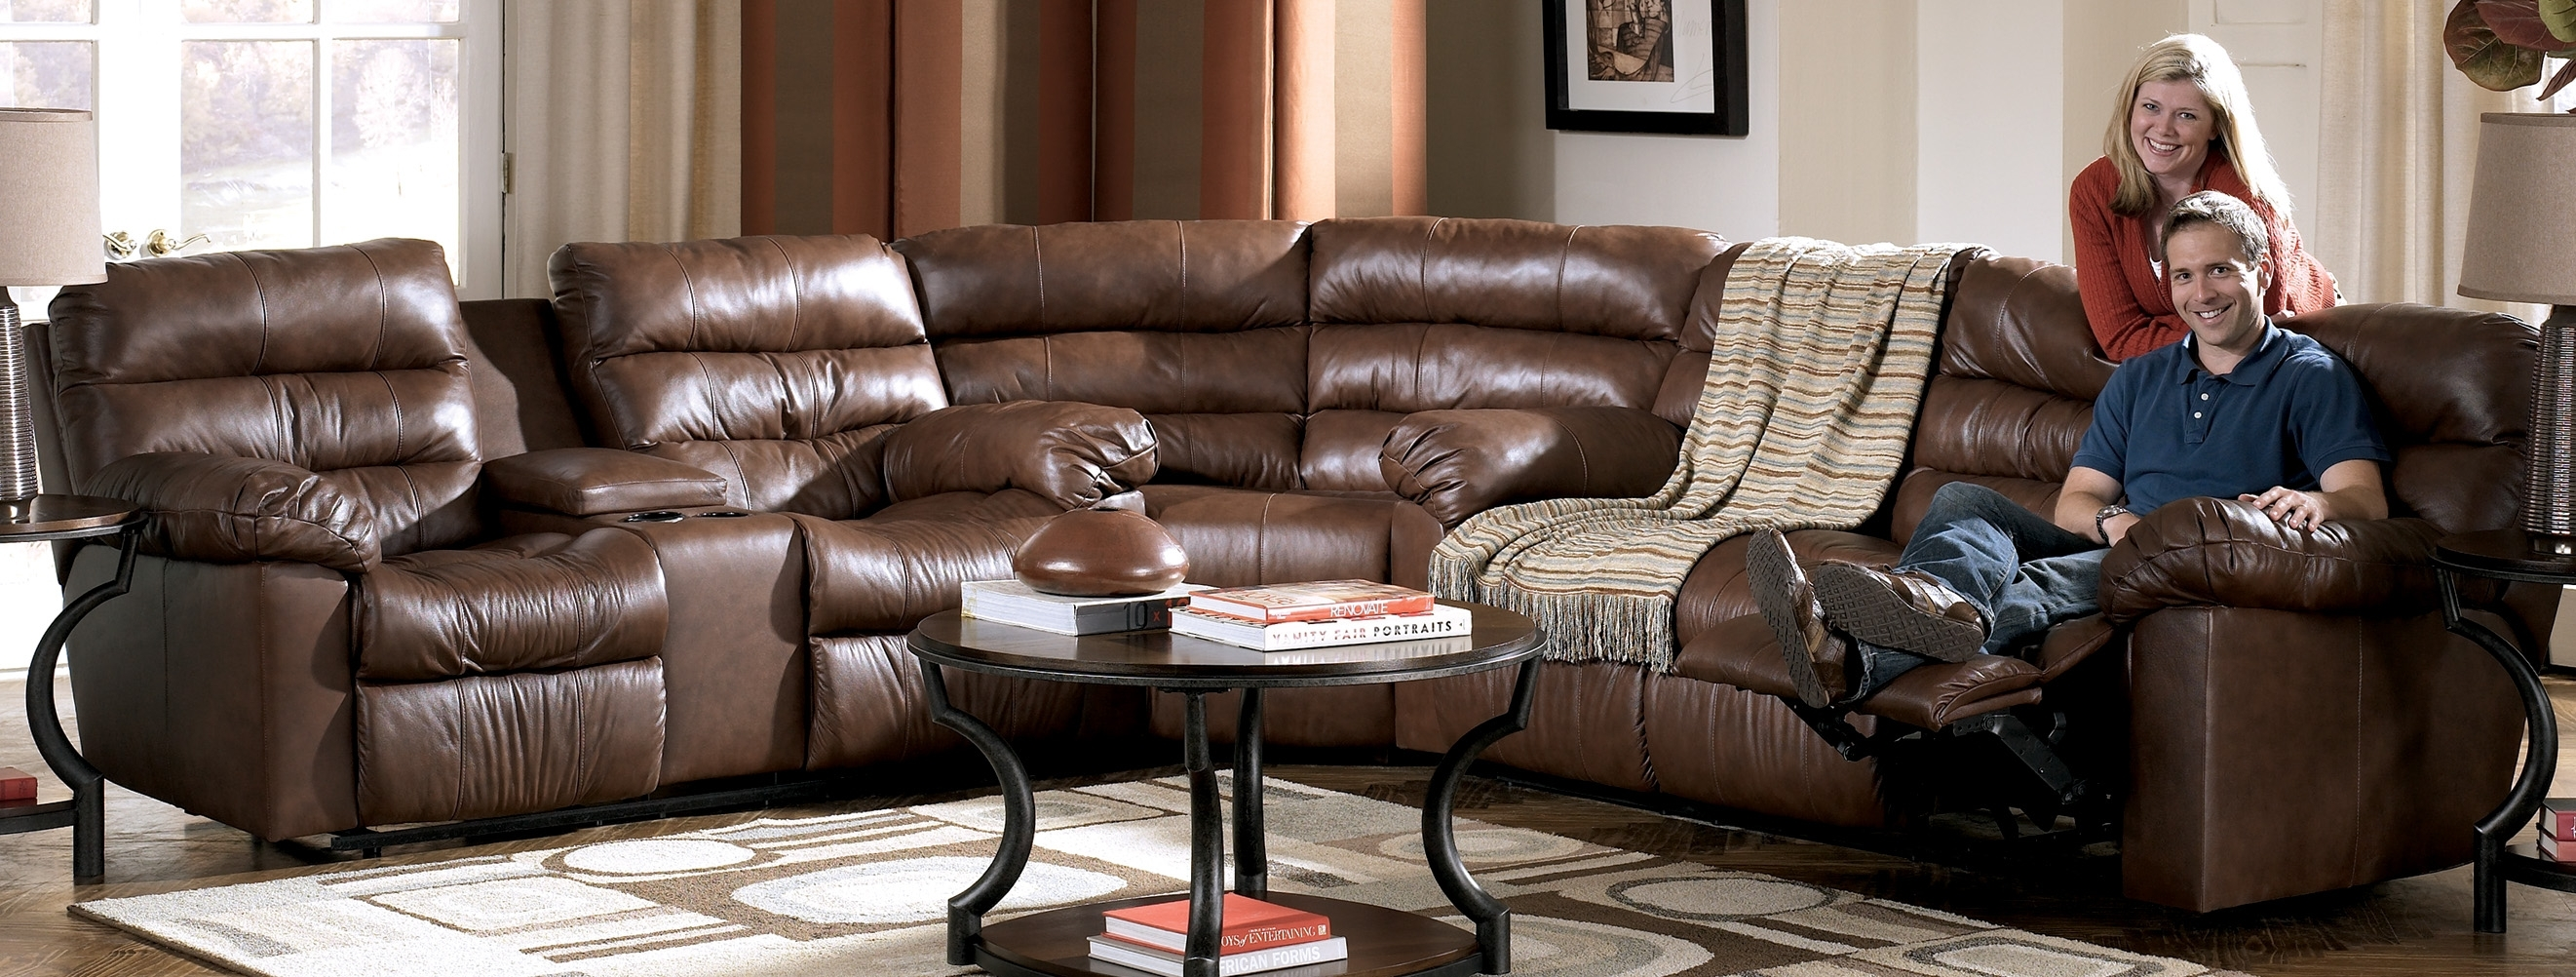 Reclining Leather Sectional Sofa With 4 Recliners And A Console In Sectional Sofas With Consoles (Image 5 of 10)